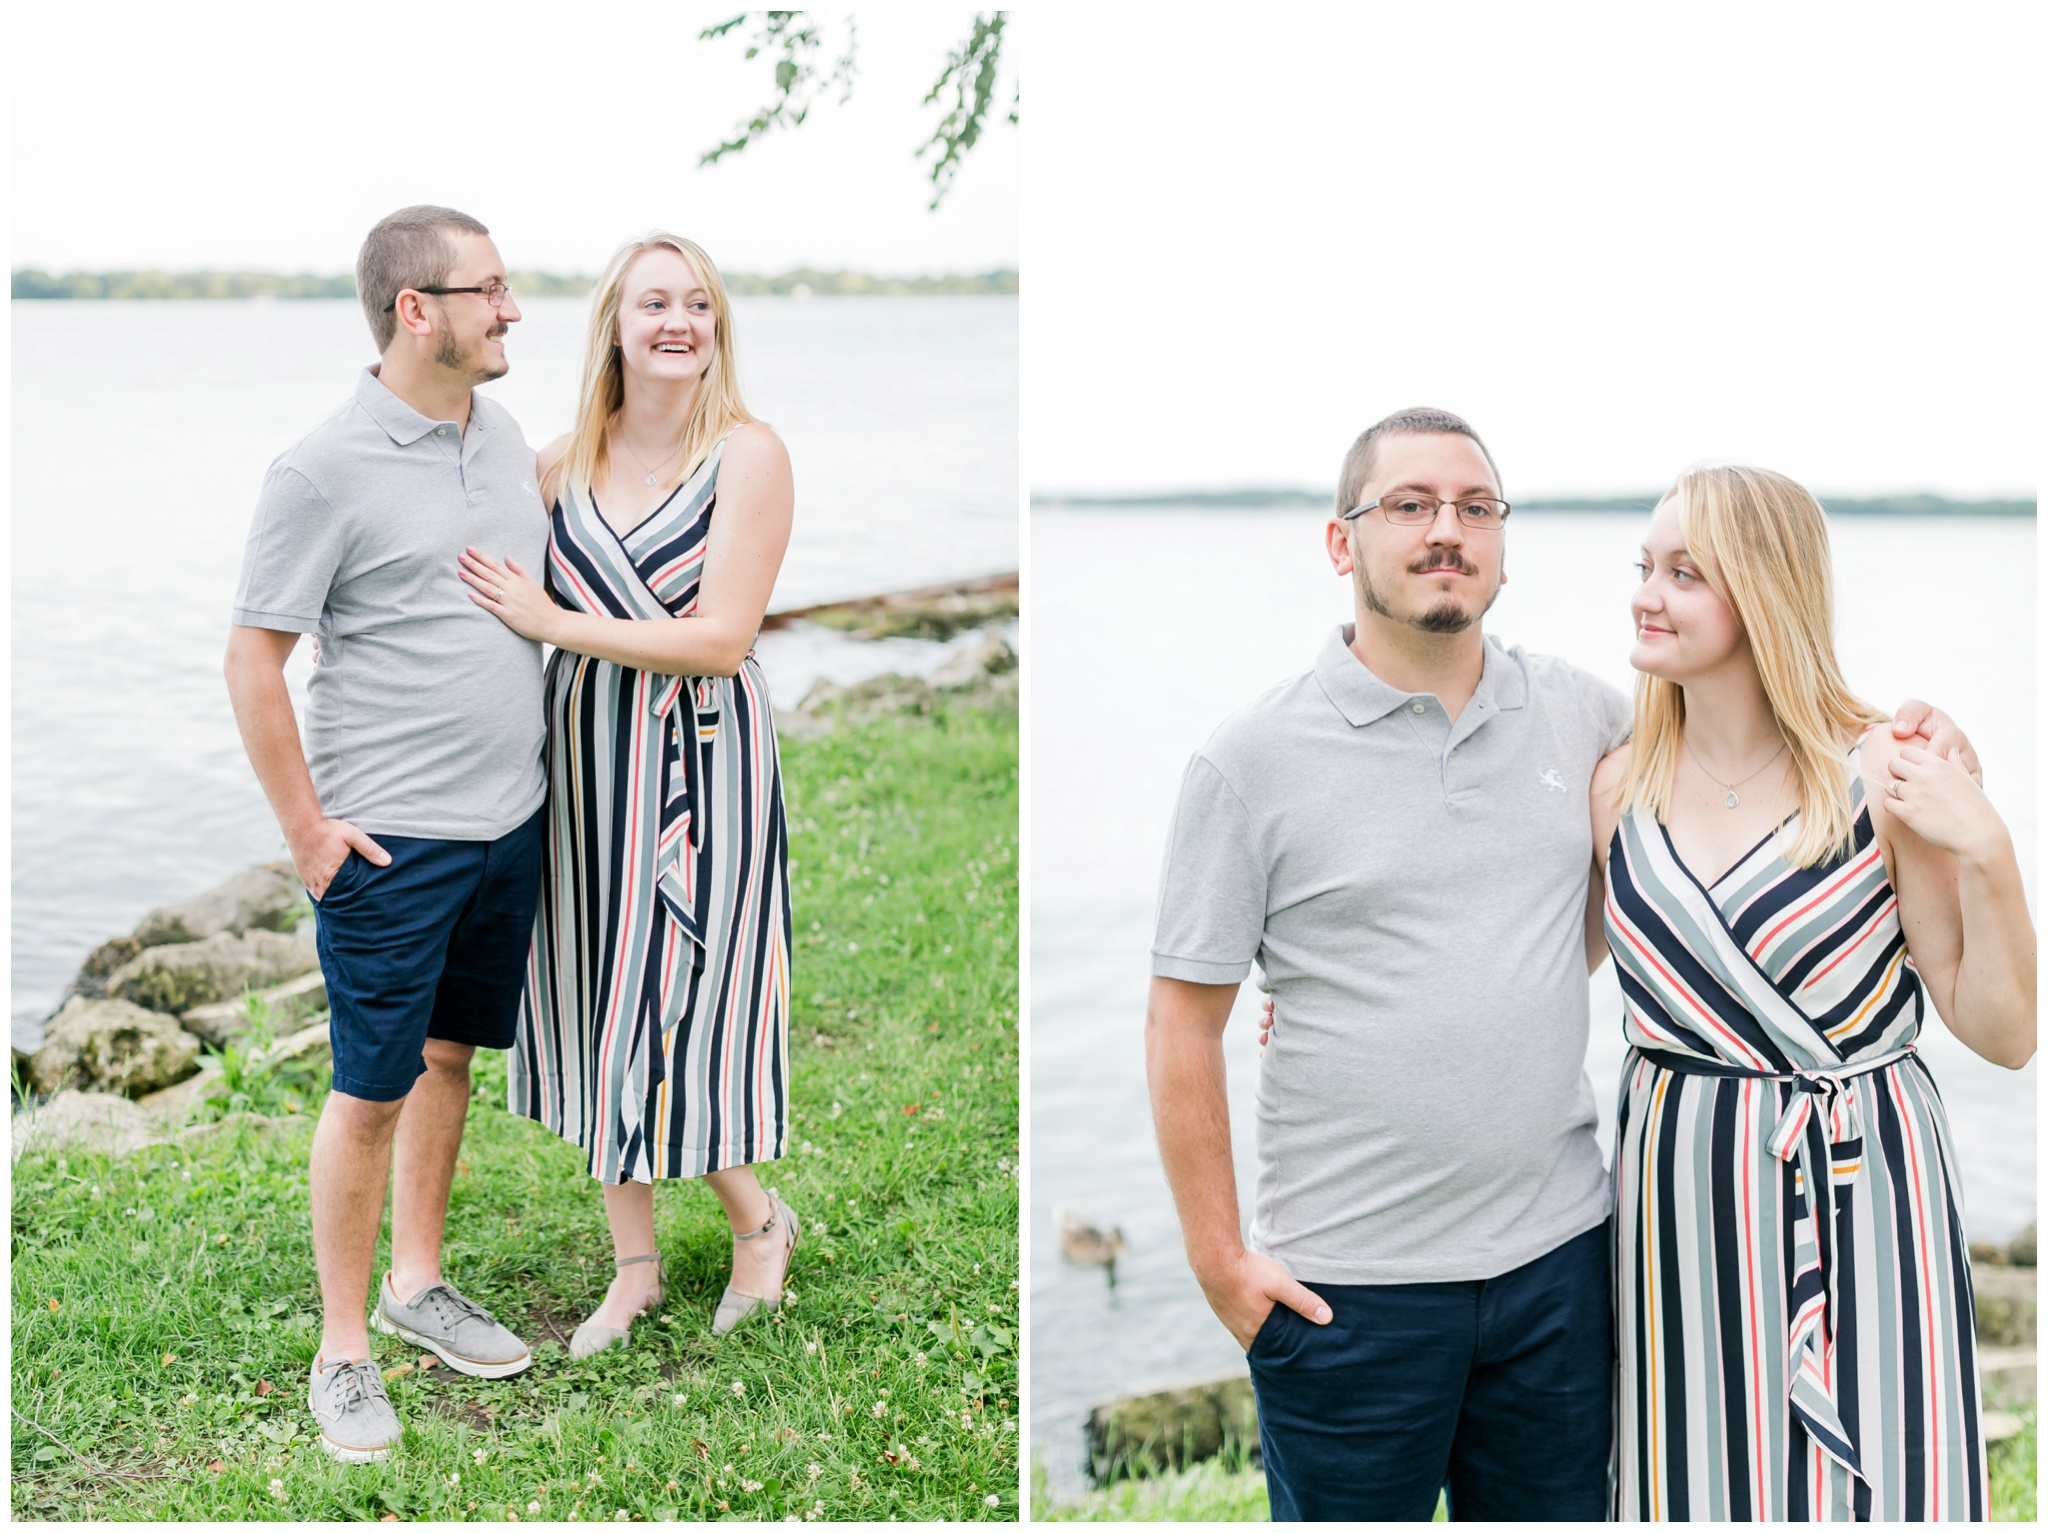 Downtown_madison_wisconsin_engagement_session_4206.jpg